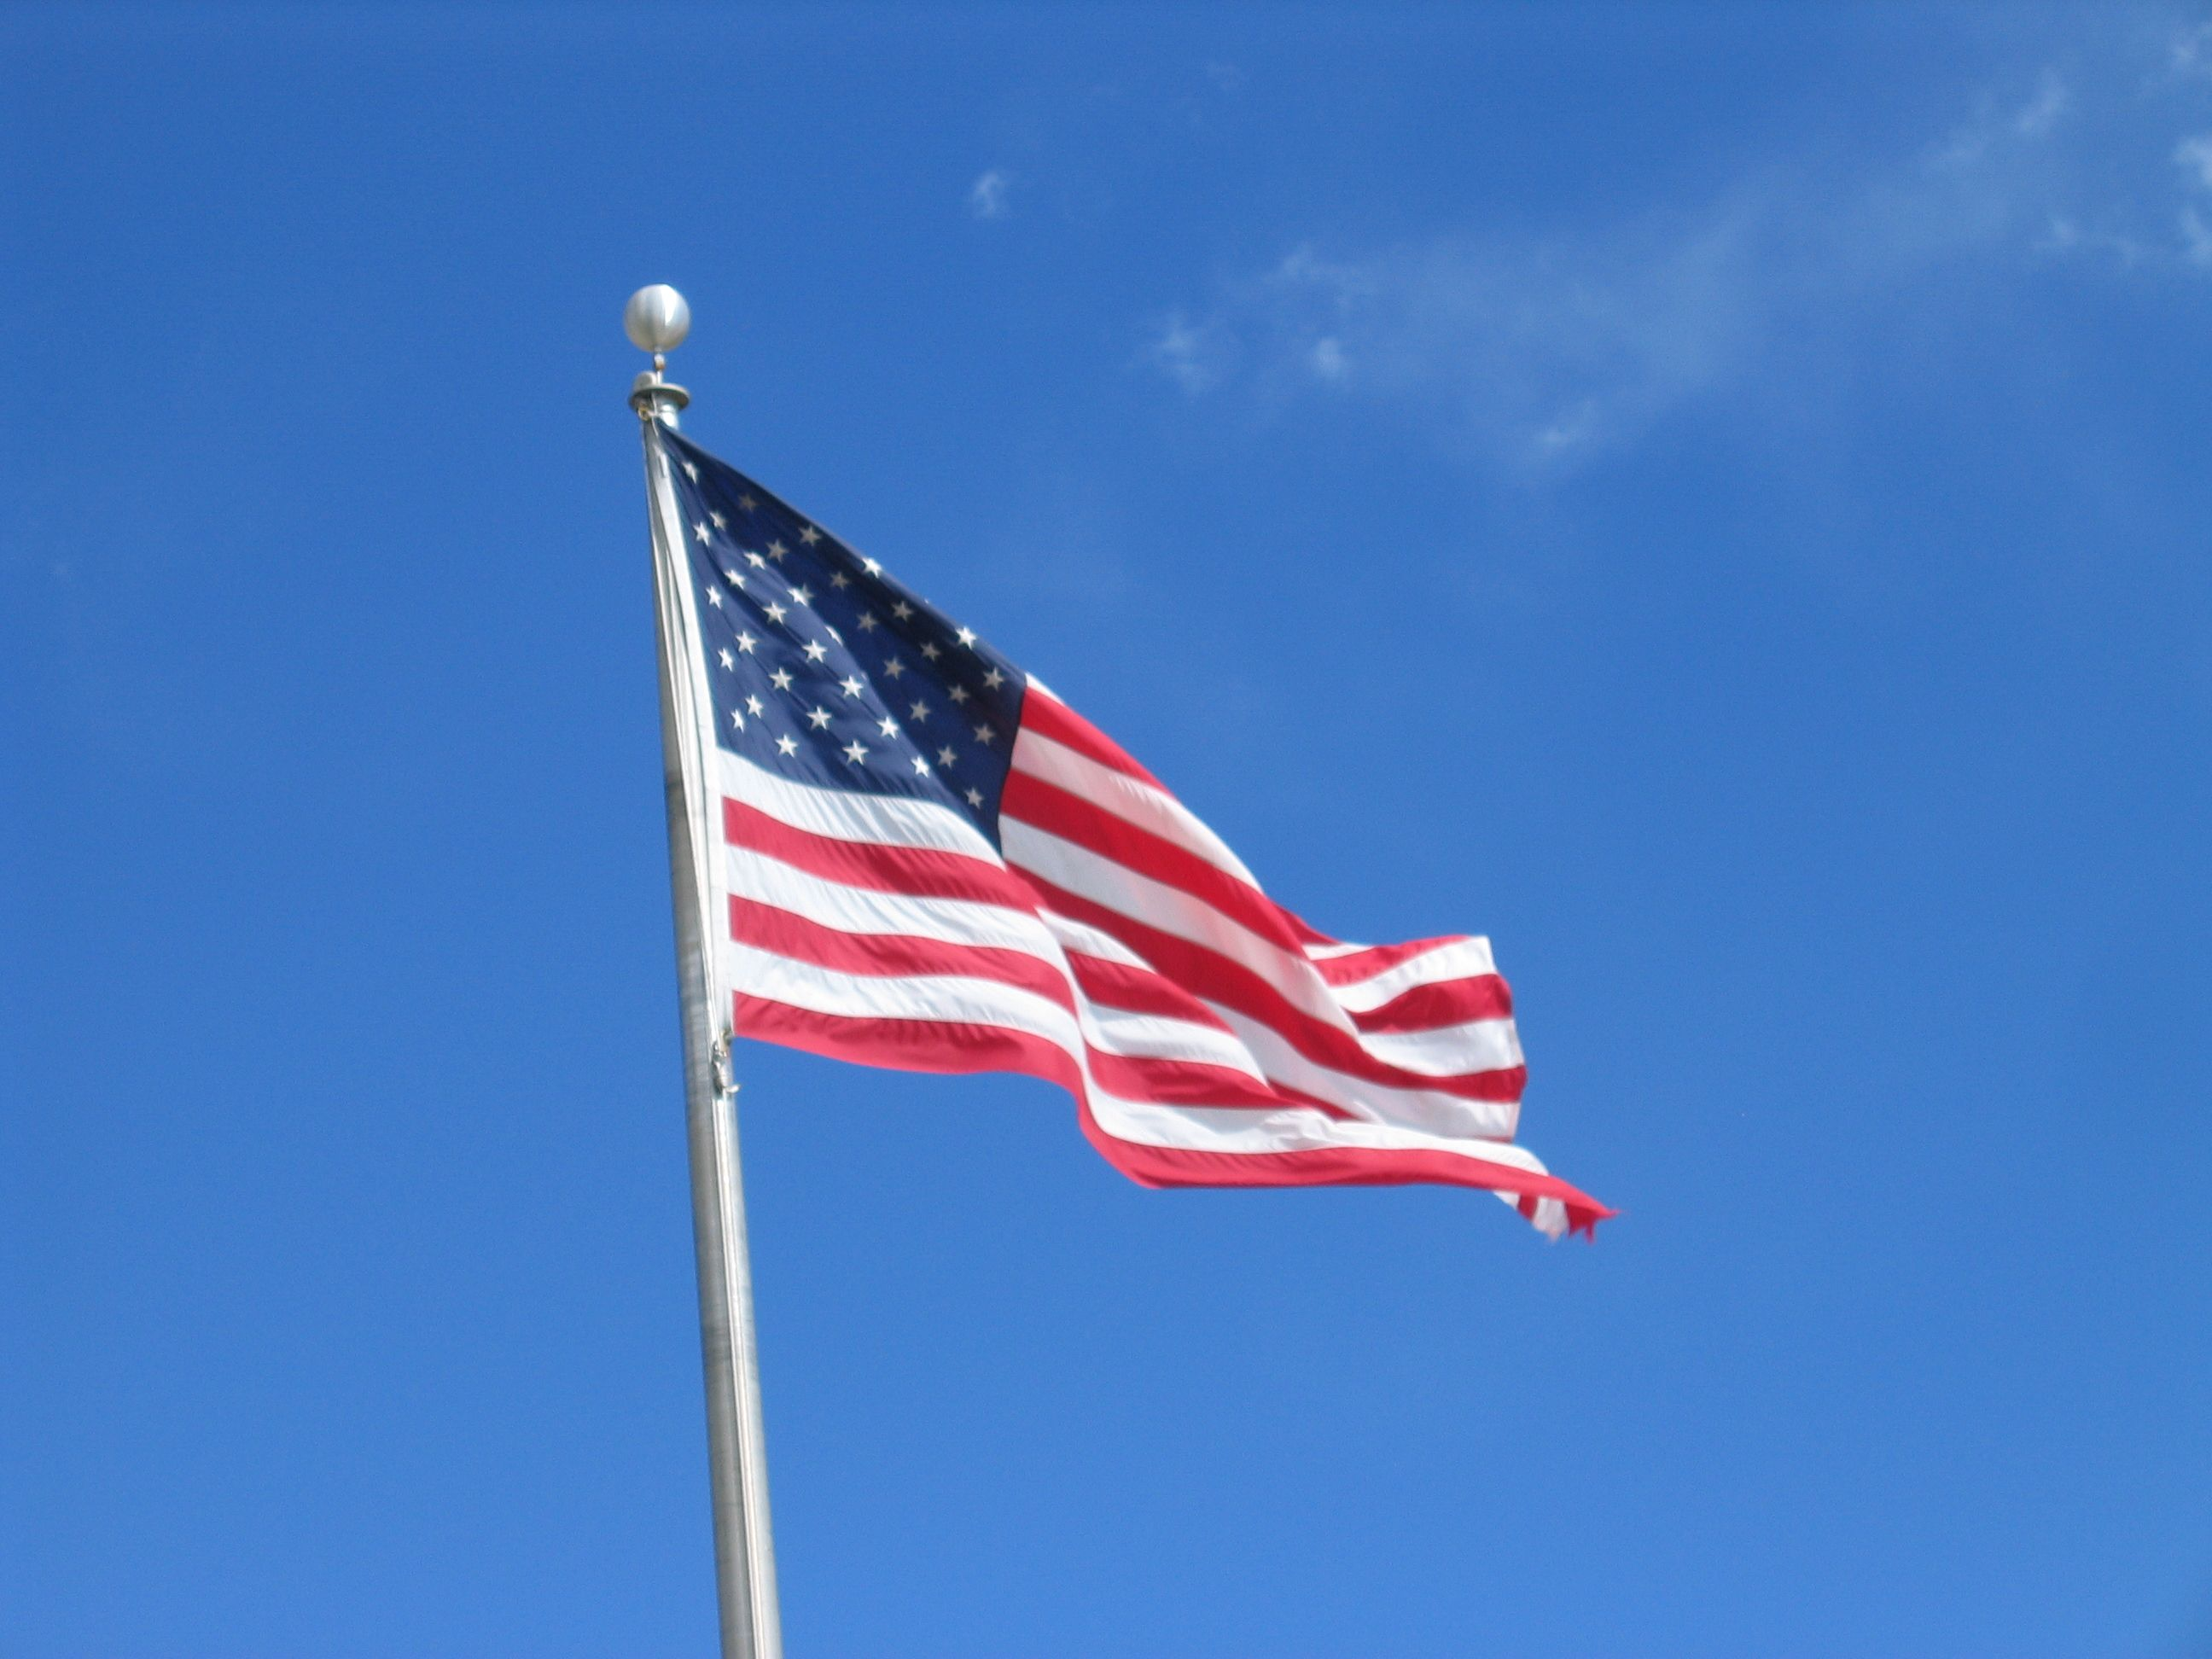 I've visited many countries and traveled to 49 American states...I love America!